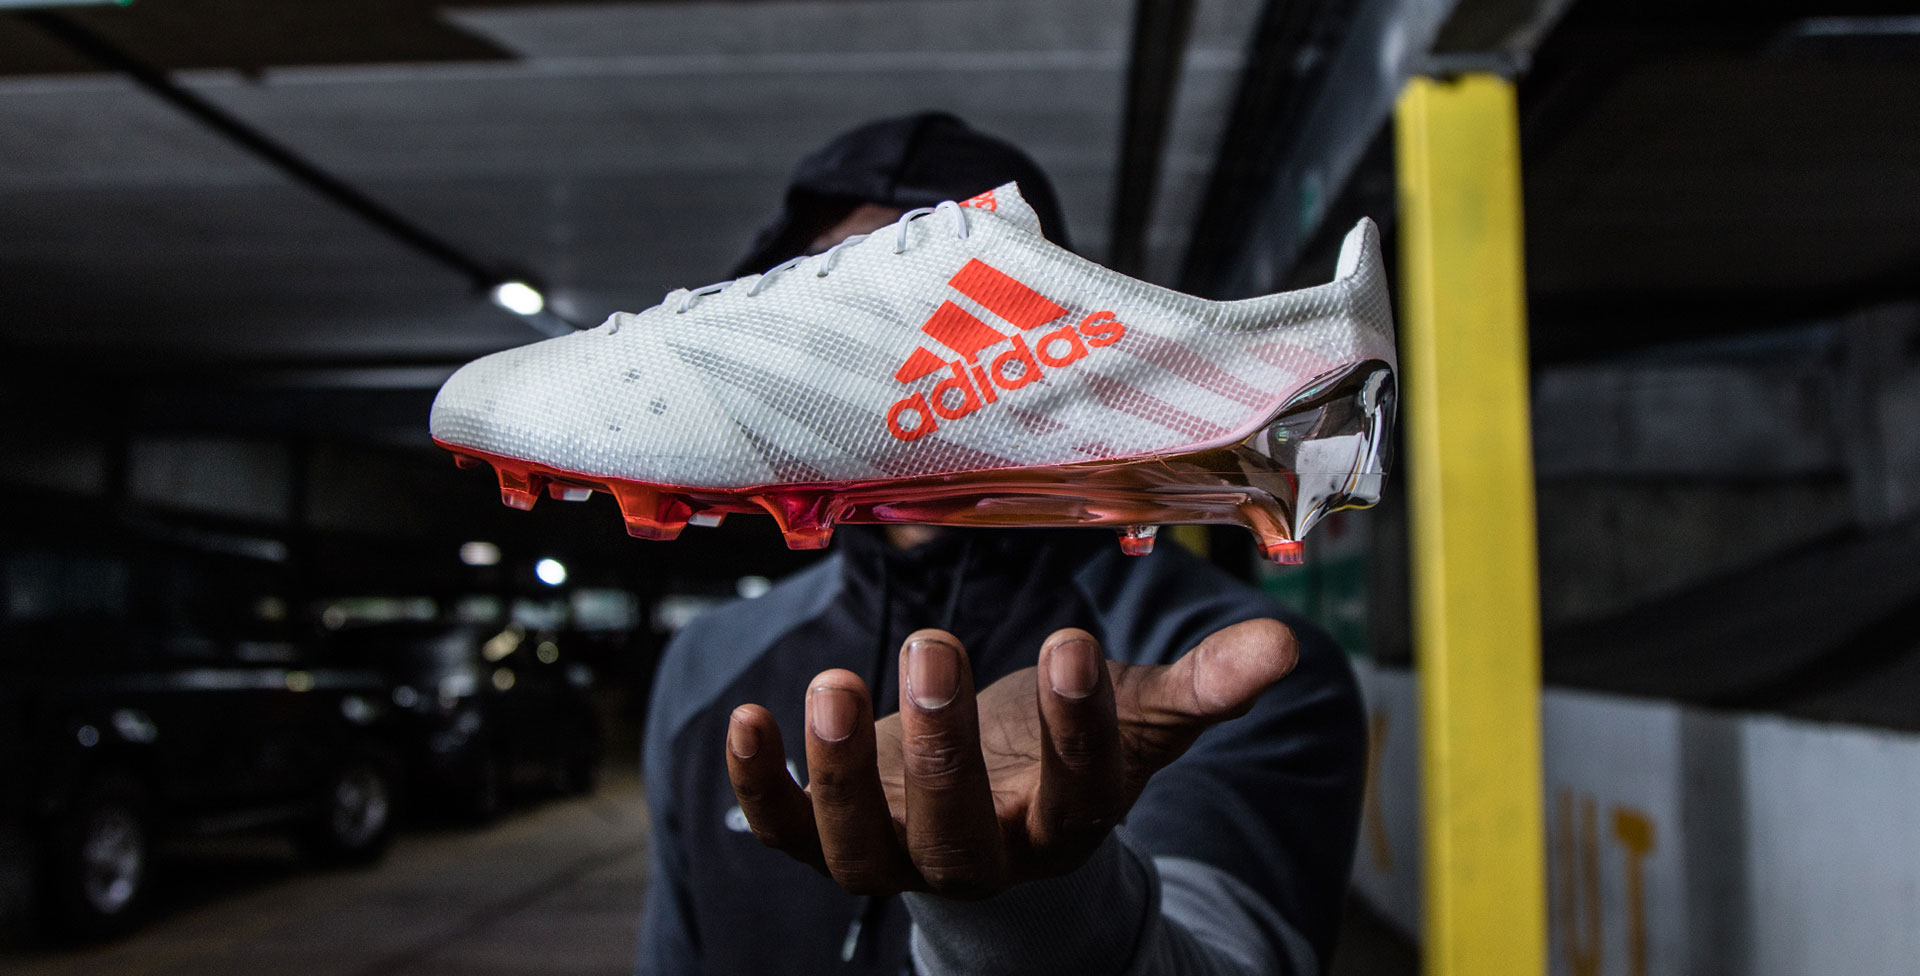 Adizero 299 99gLimited Collection weltweit Paare adidas H2I9ED